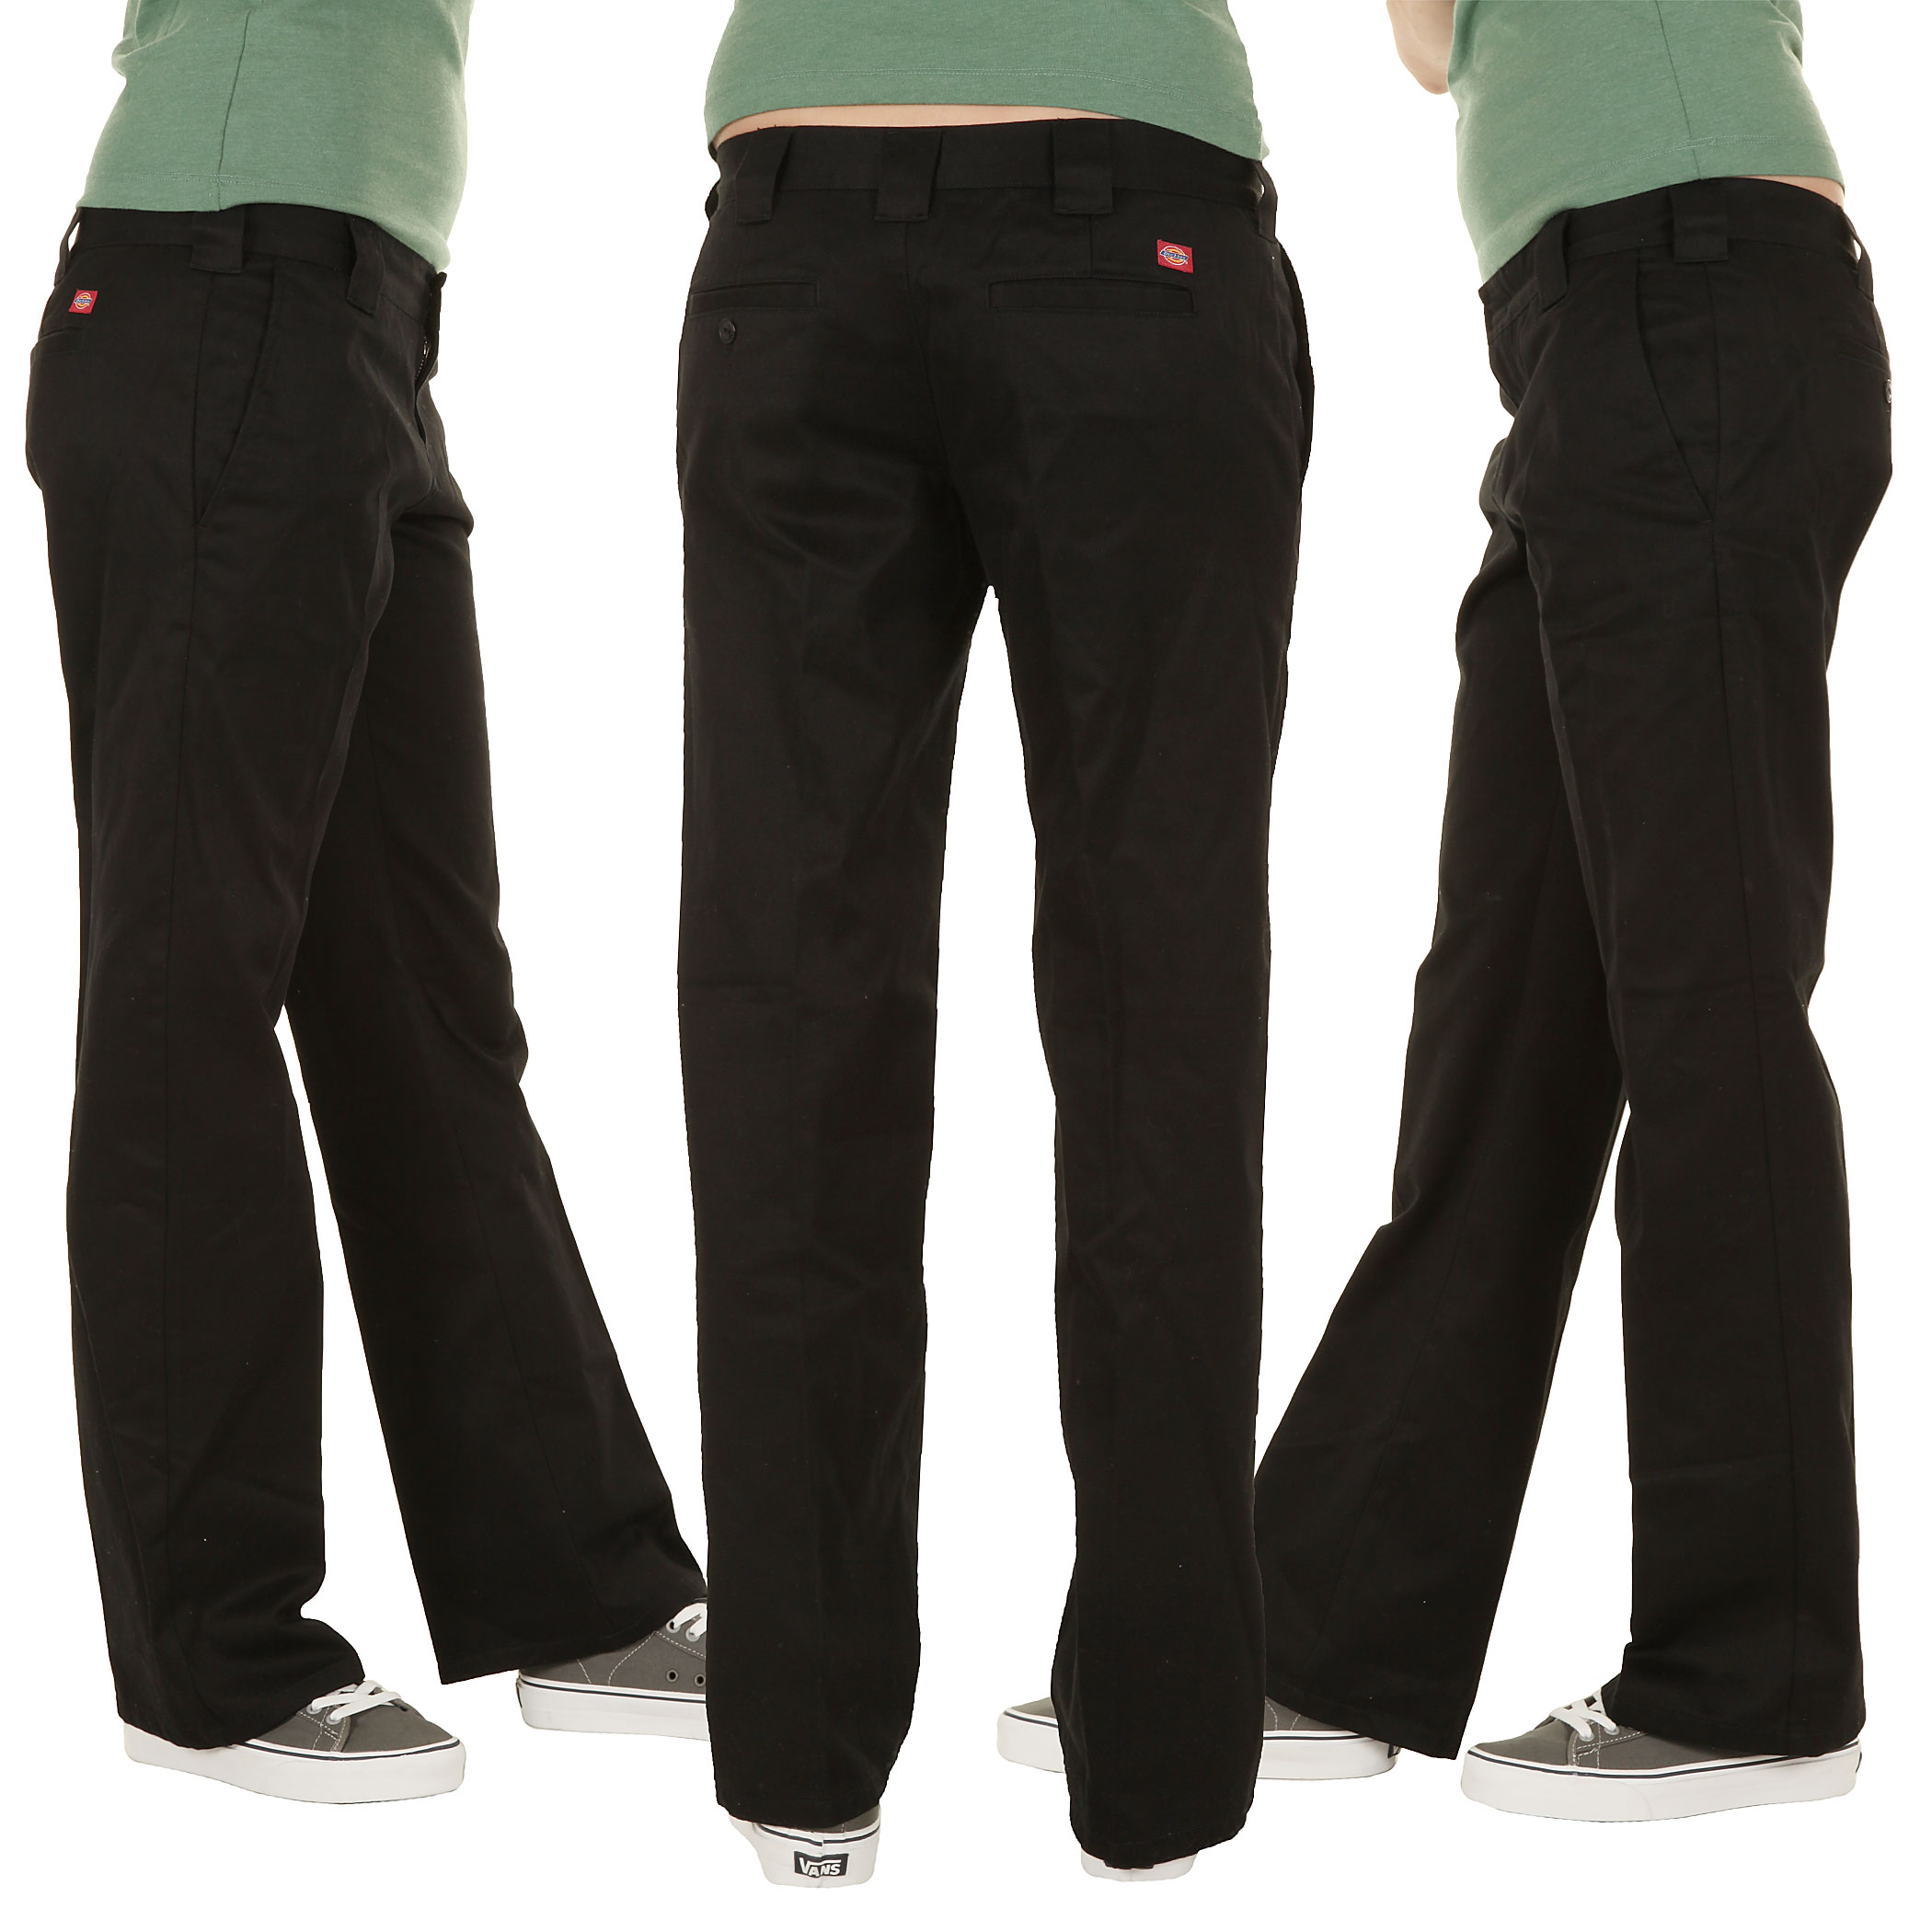 Luxury NEW DICKIES GIRLS NAVY PANTS N882 THE WORKER NWT WITH TAGS WOMENS